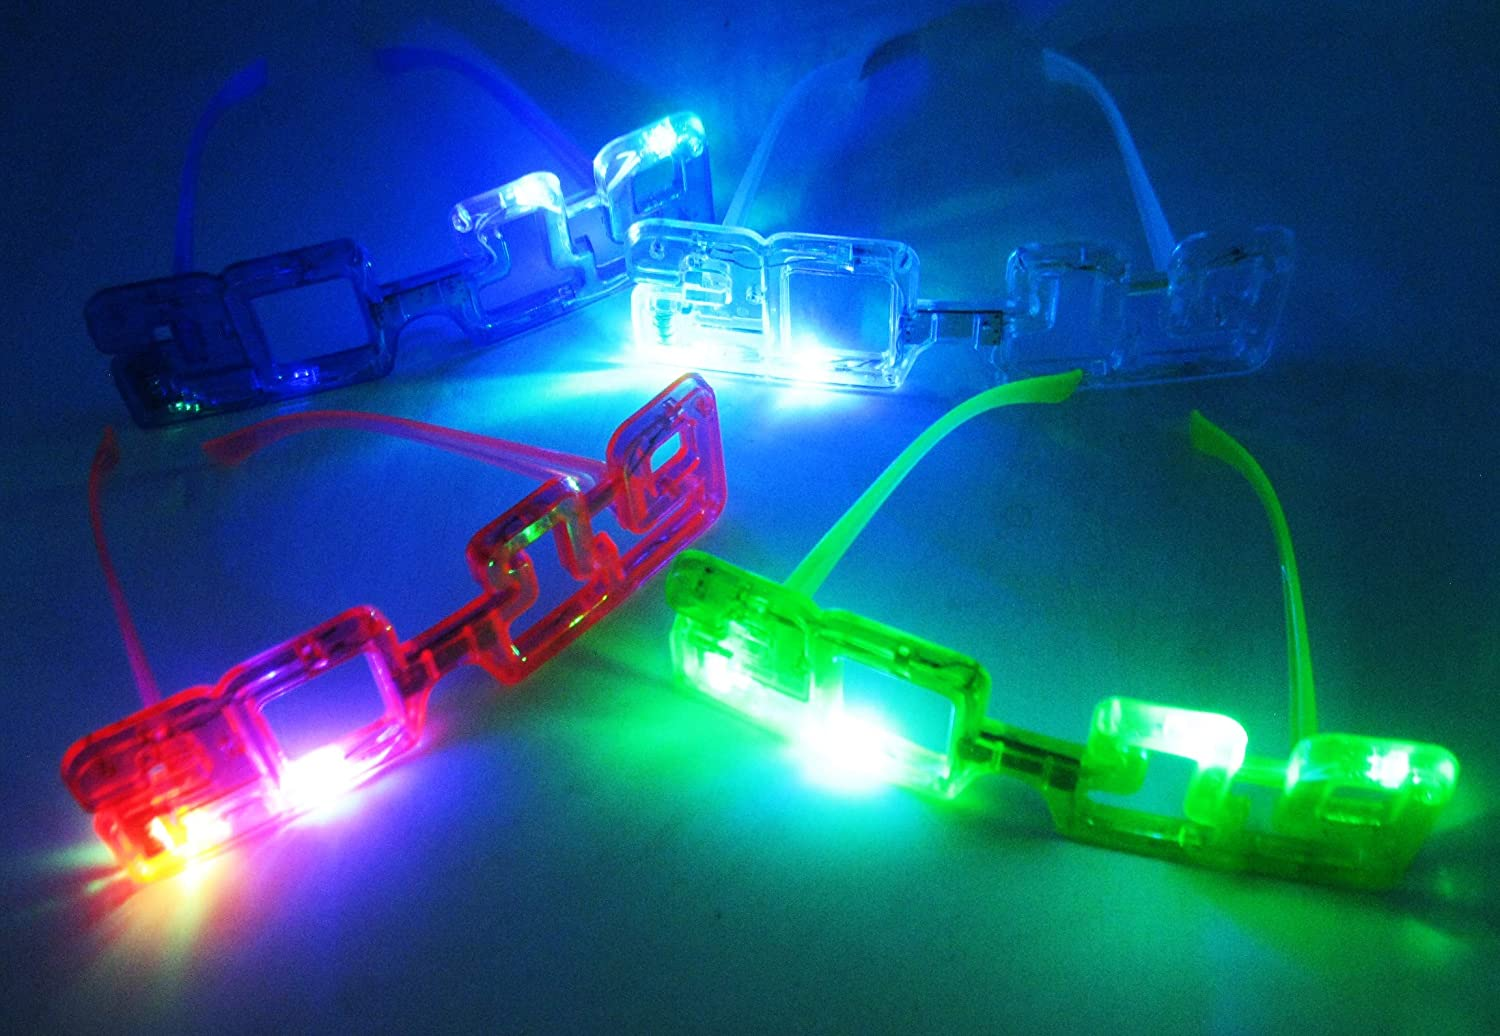 12//pk Light Up New Year Party supplies 2019 Sunglasses Glasses Glowing Eyes Led Shades HnF shop SG/_B076TS6QPR/_US